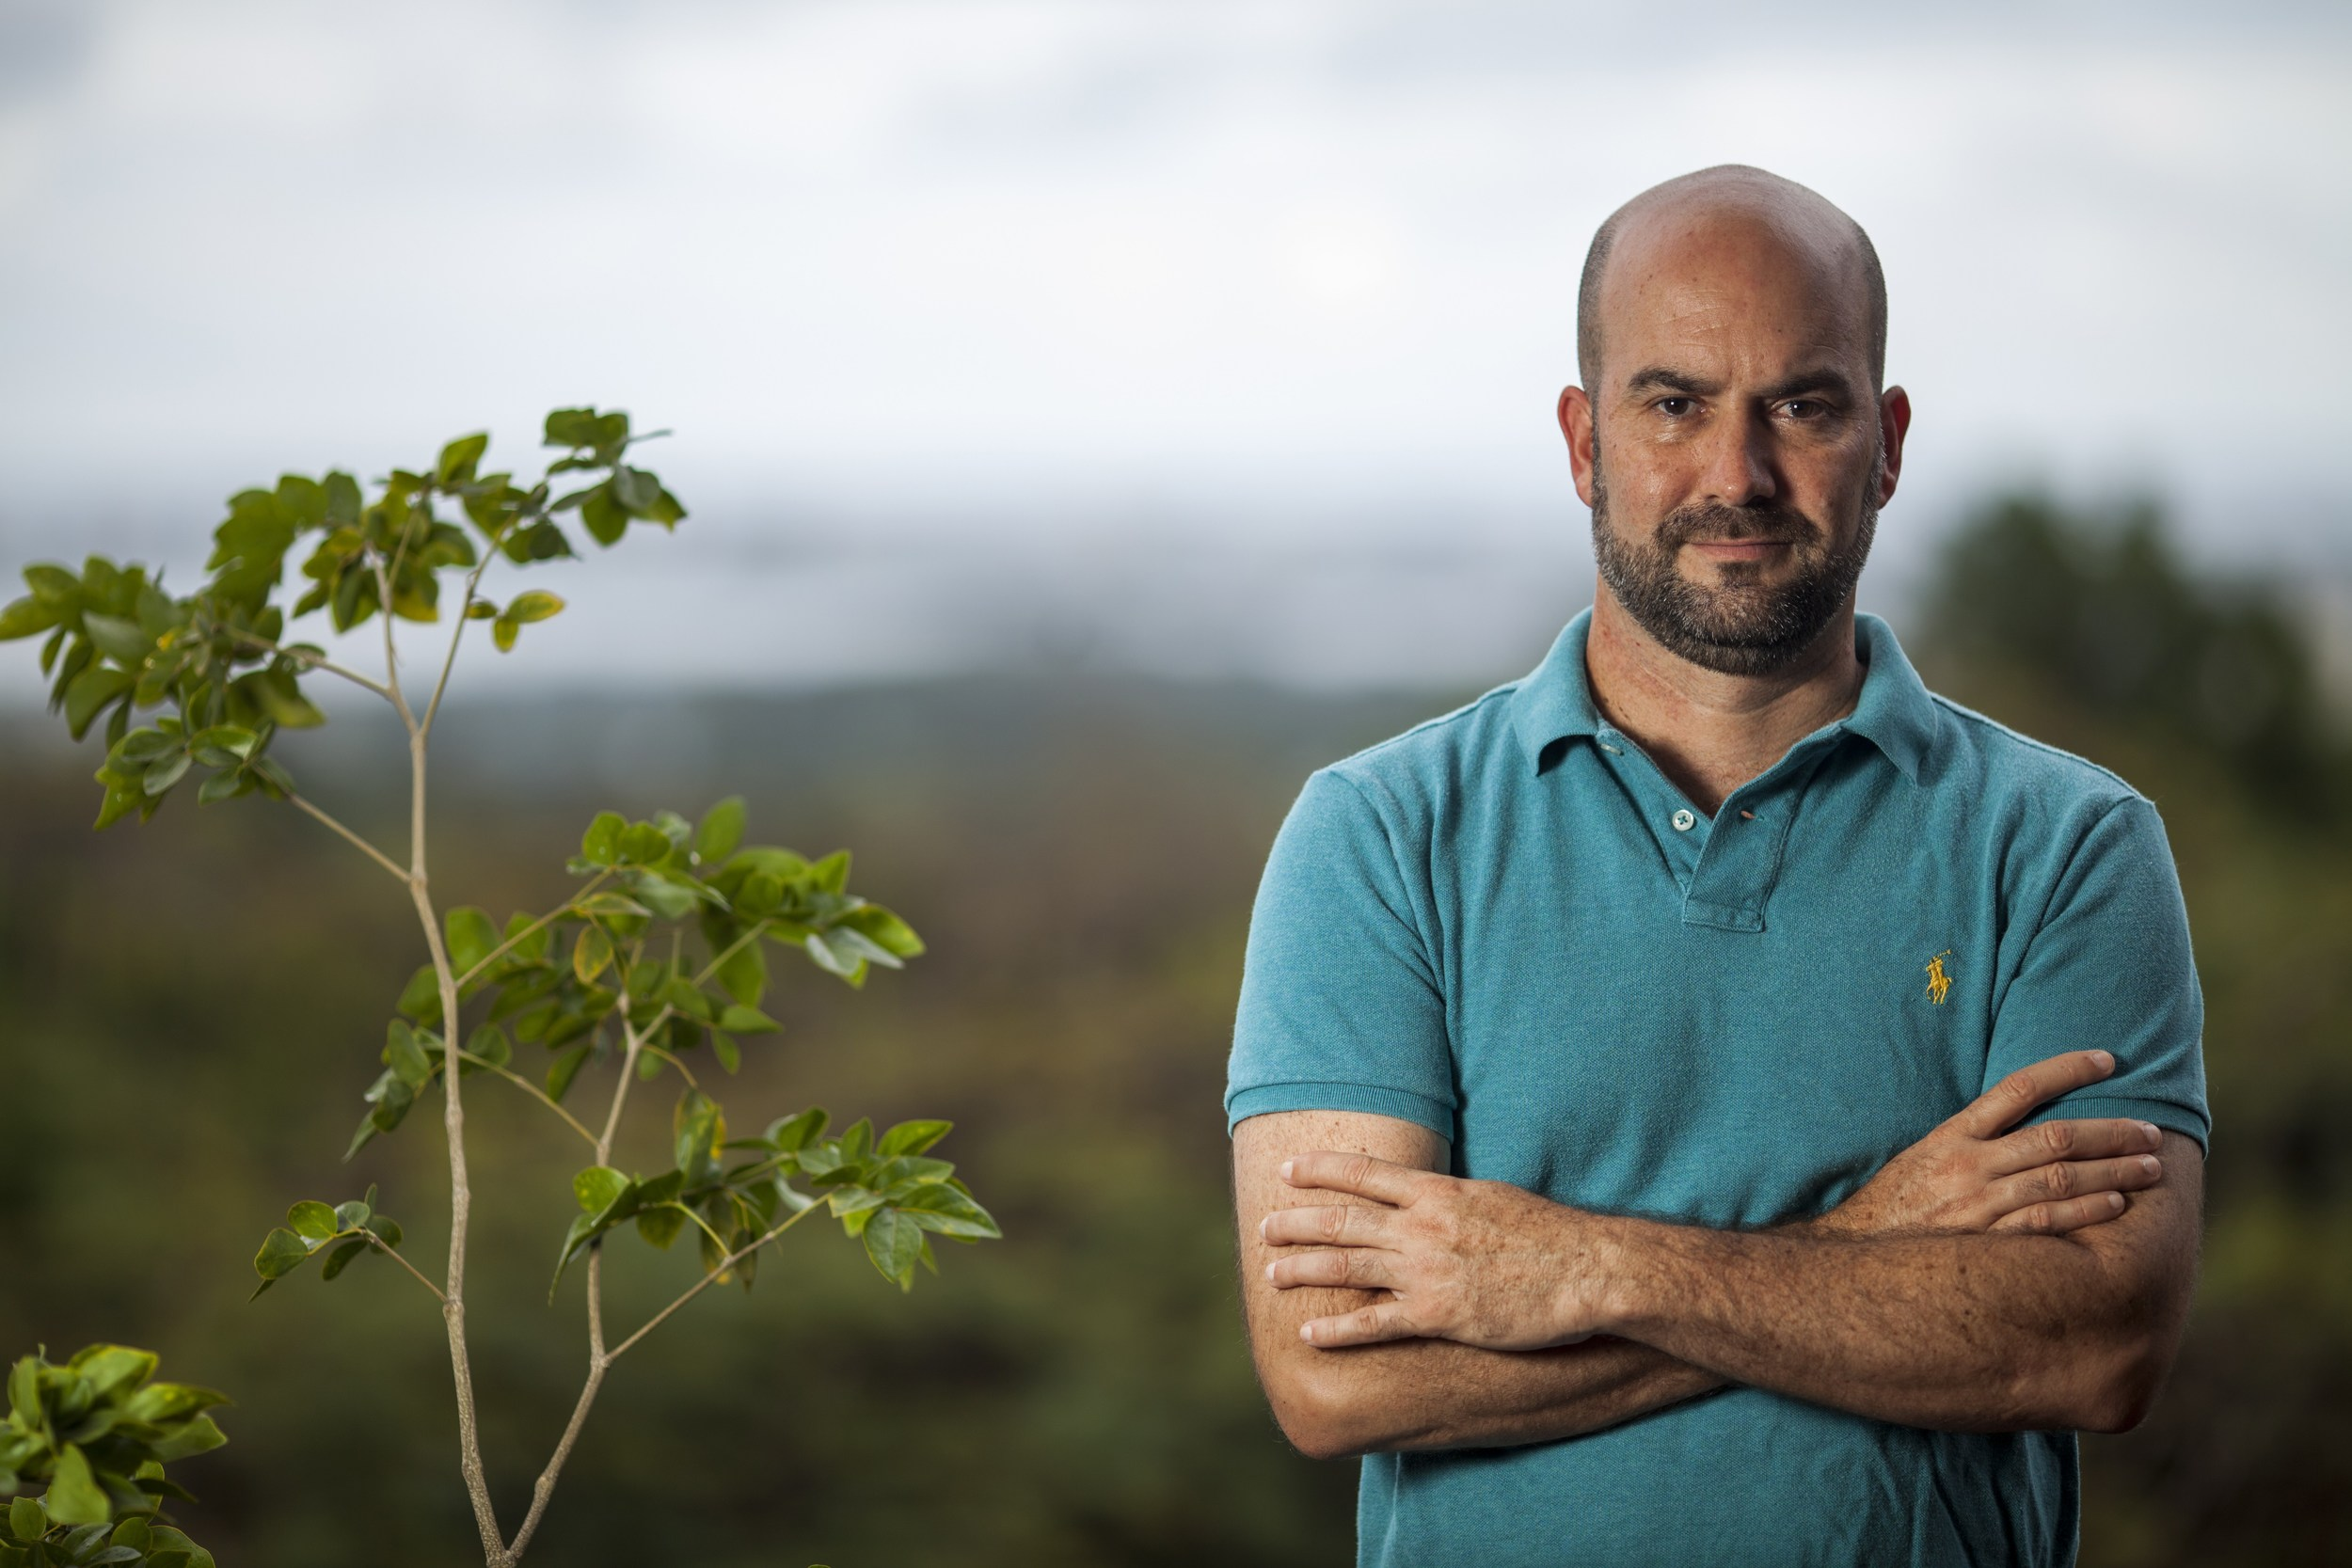 Luis Jorge Rivera Herrera helped lead a successful campaign to establish a nature reserve in Puerto Rico's Northeast Ecological Corridor—an important nesting ground for the endangered leatherback sea turtle—and protect the island's natural heritage from harmful development.